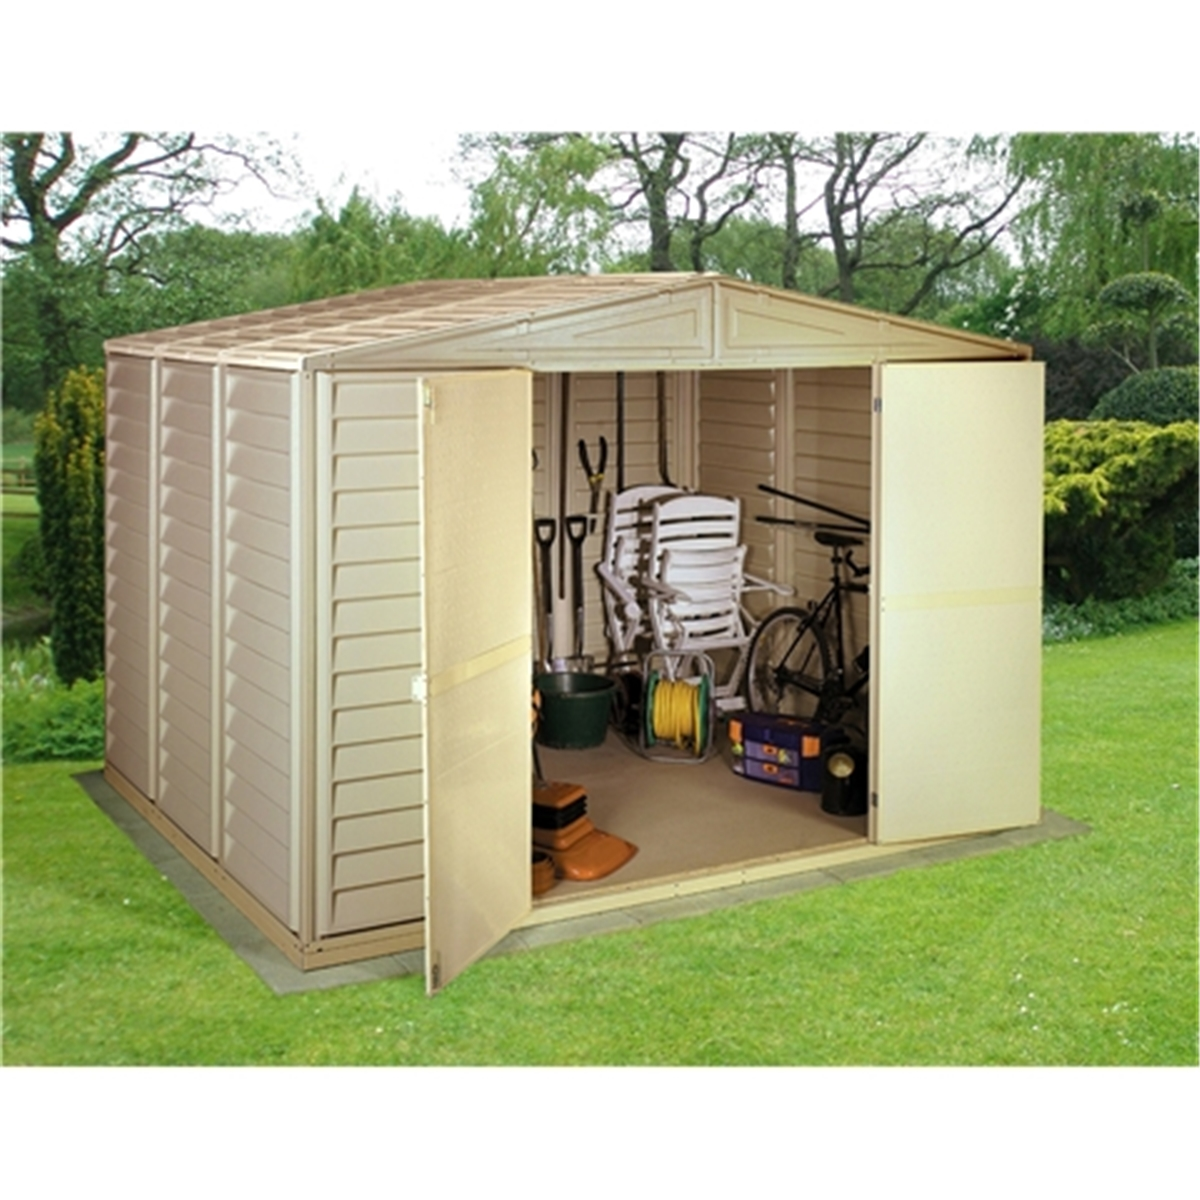 Disco 10 X 8 Select Duramax Plastic Pvc Shed With Steel Frame 3 19m X 2 39m Shedsfirst